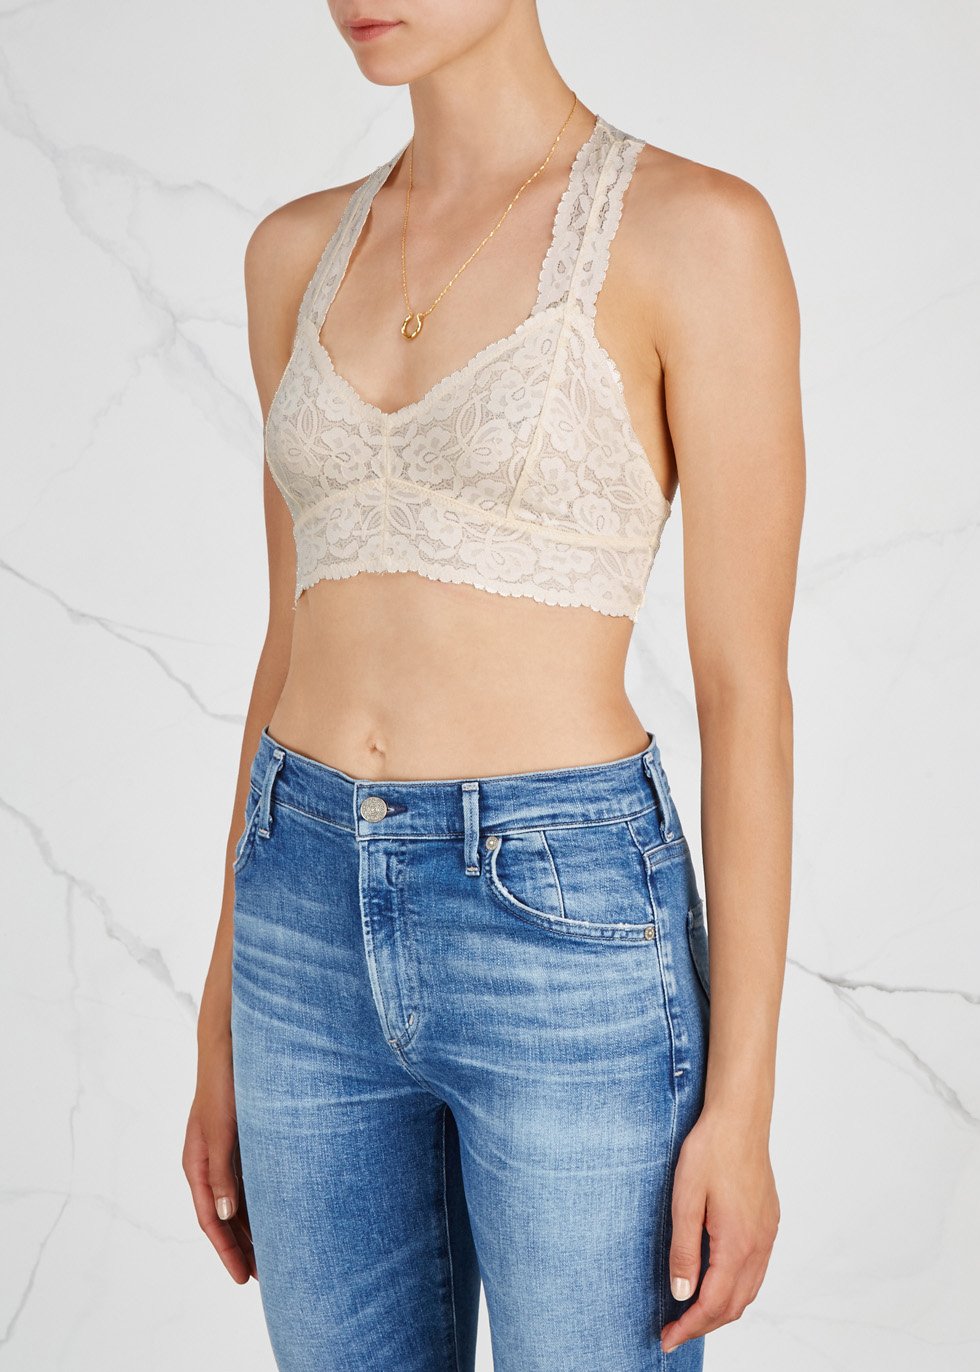 Galloon ivory lace bra top - Free People